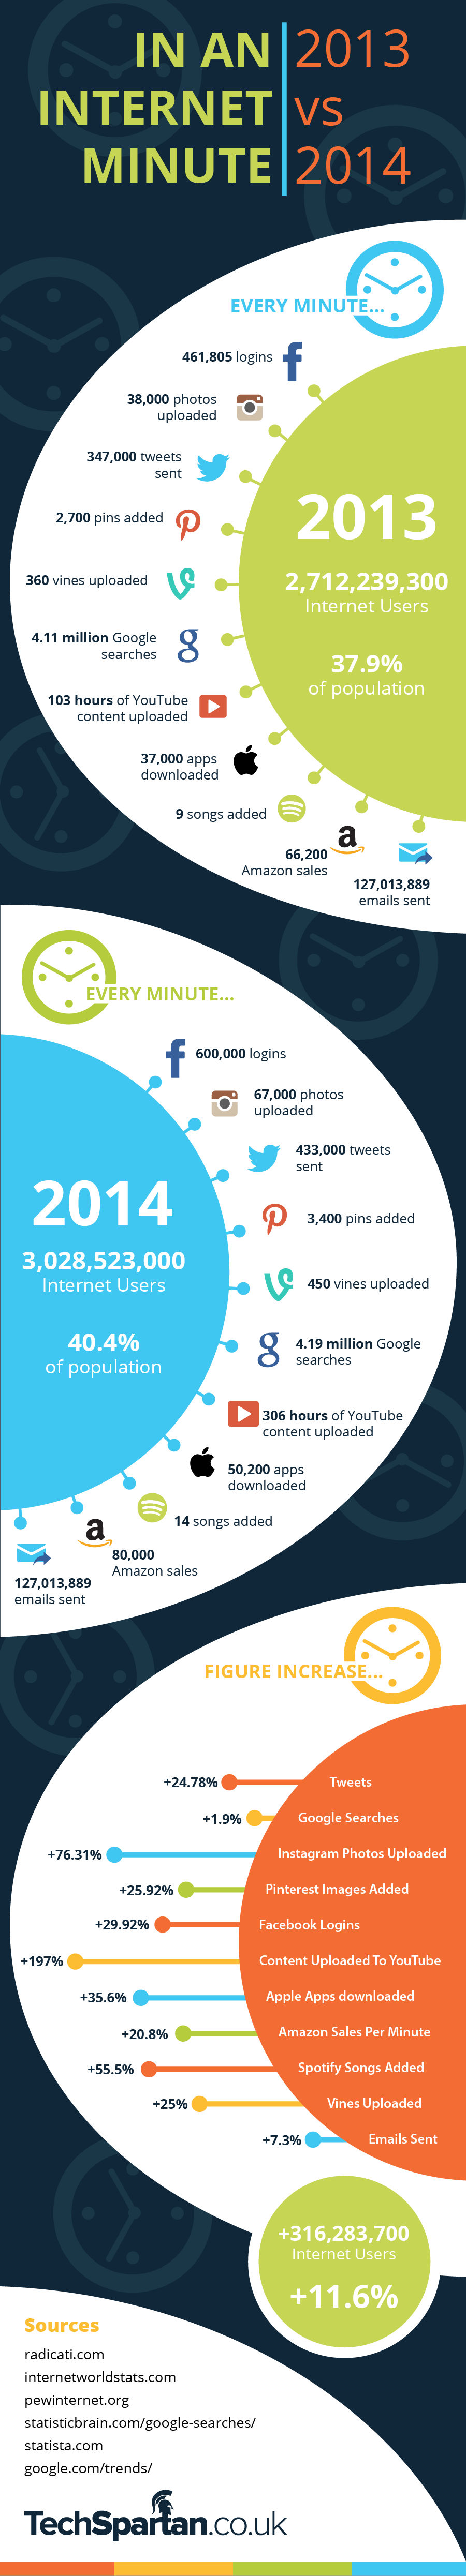 In An Internet Minute 2013 vs 2014 #infographic